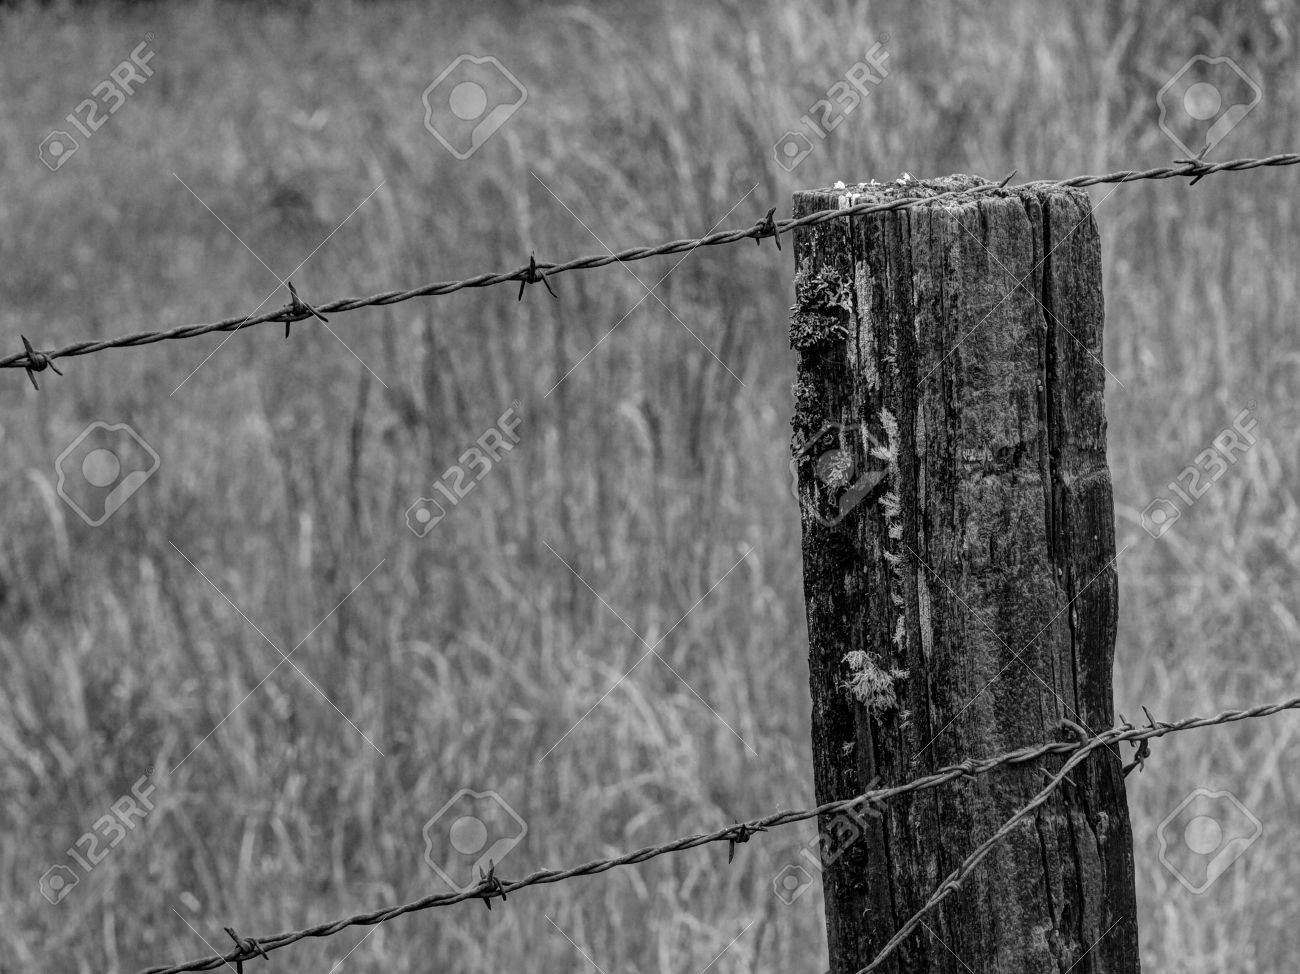 Rustic Barbed Wire Fence In Black And White Stock Photo, Picture And ...